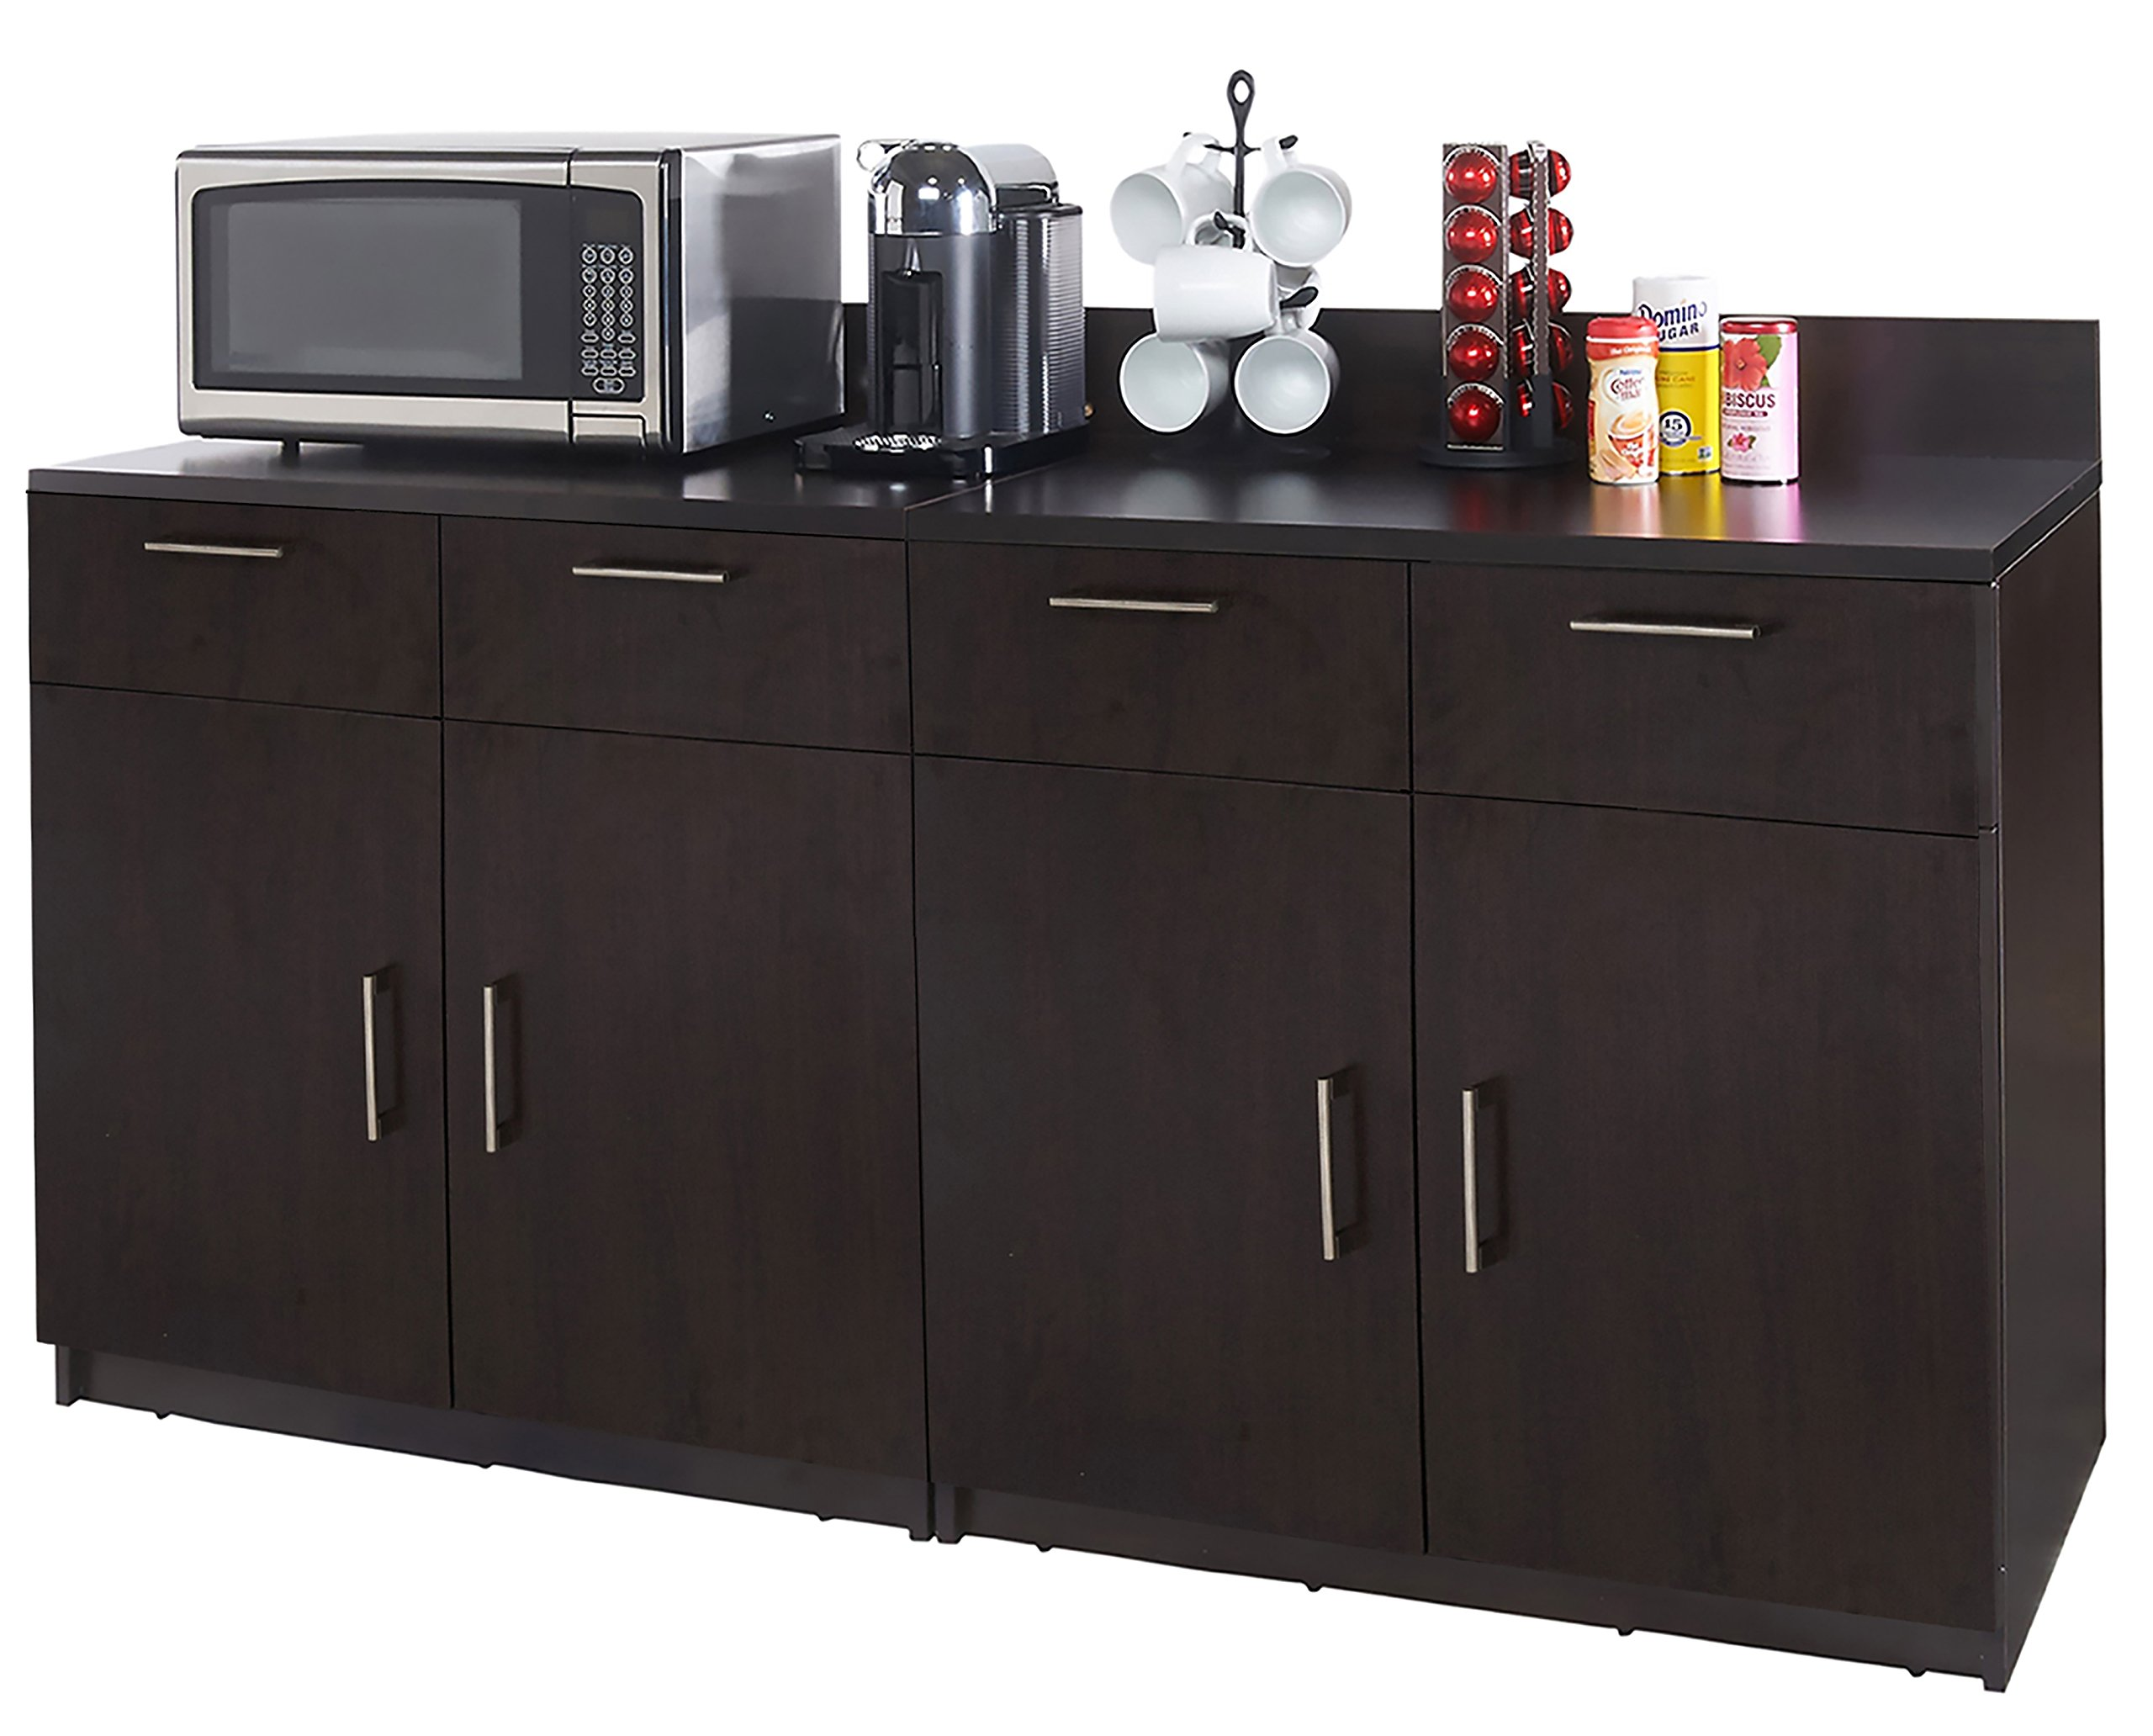 Coffee Kitchen Lunch Break Room Cabinets Model 4346 BREAKTIME 2 Piece Group Color Espresso - Factory Assembled (NOT RTA) Furniture Items ONLY. by Breaktime (Image #1)